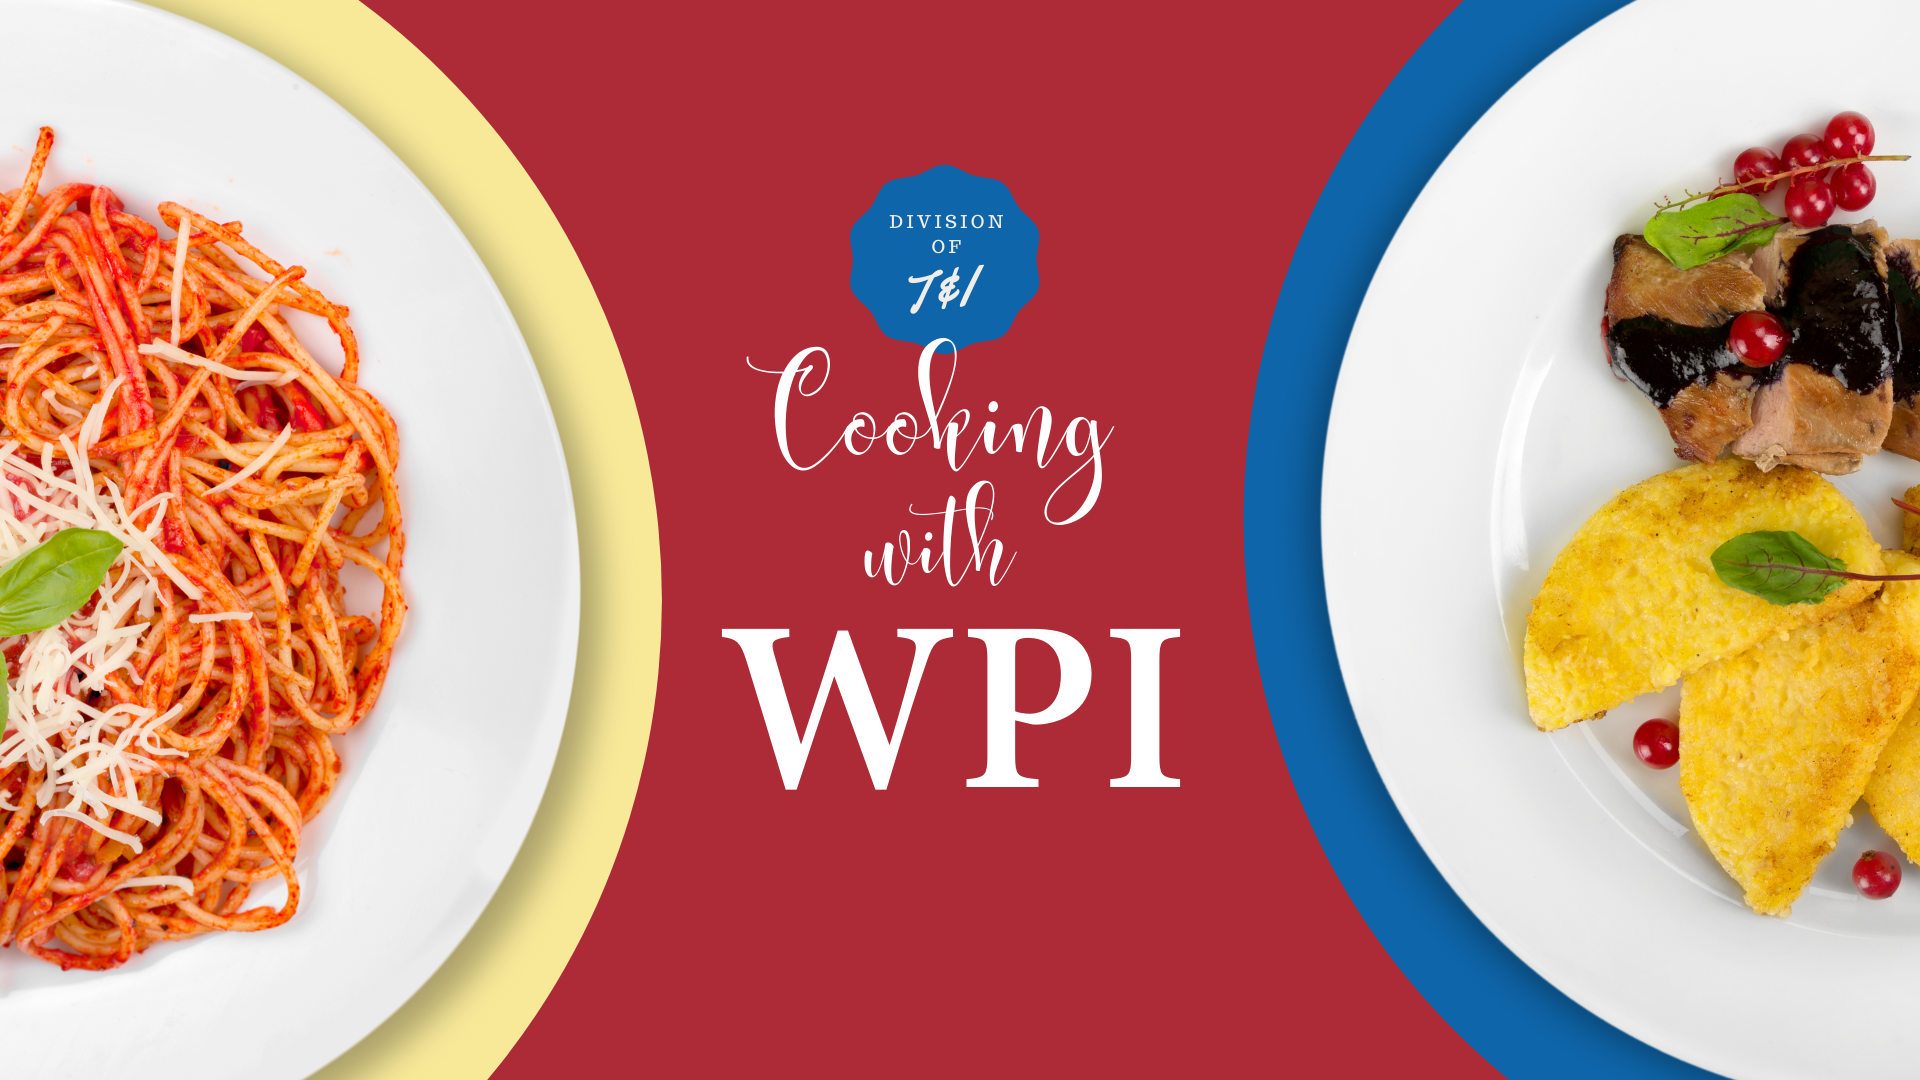 Cooking with WPI